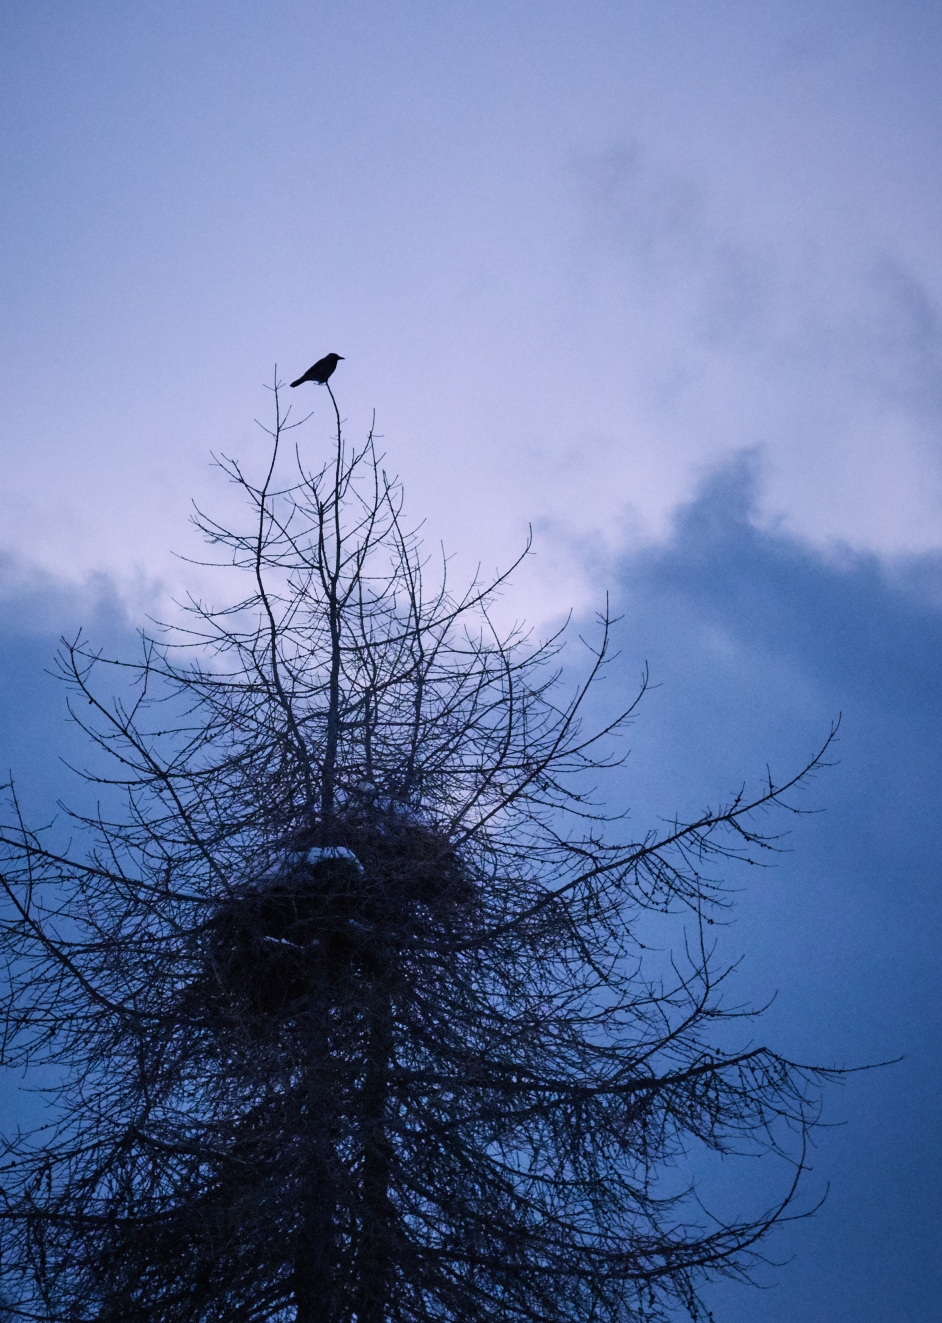 Tuesday. A crow in the dead pine.